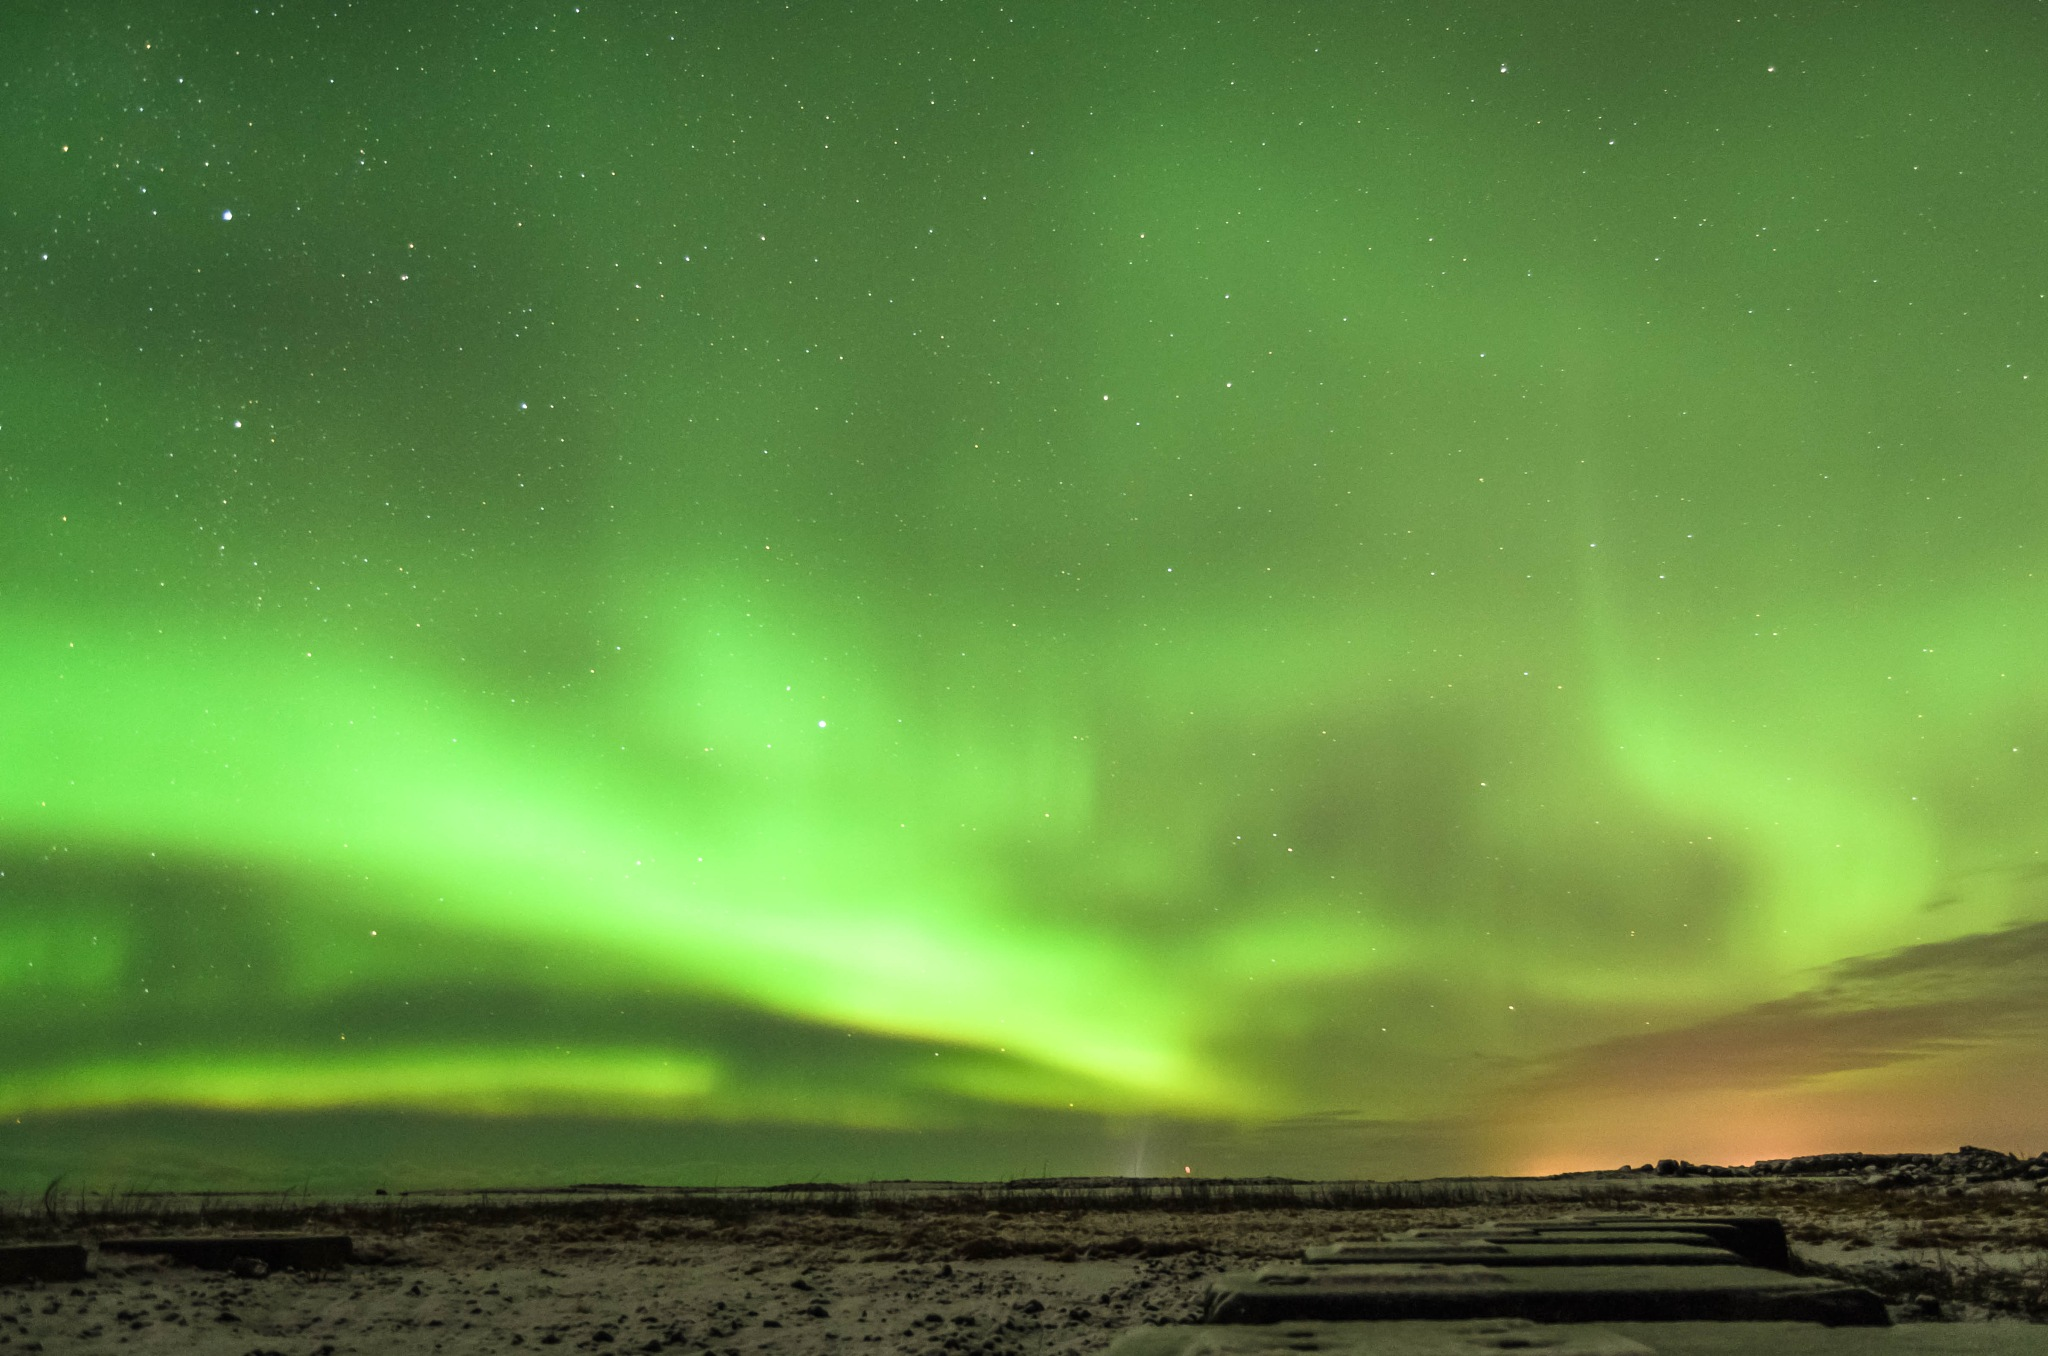 Nothern lights by Tavo